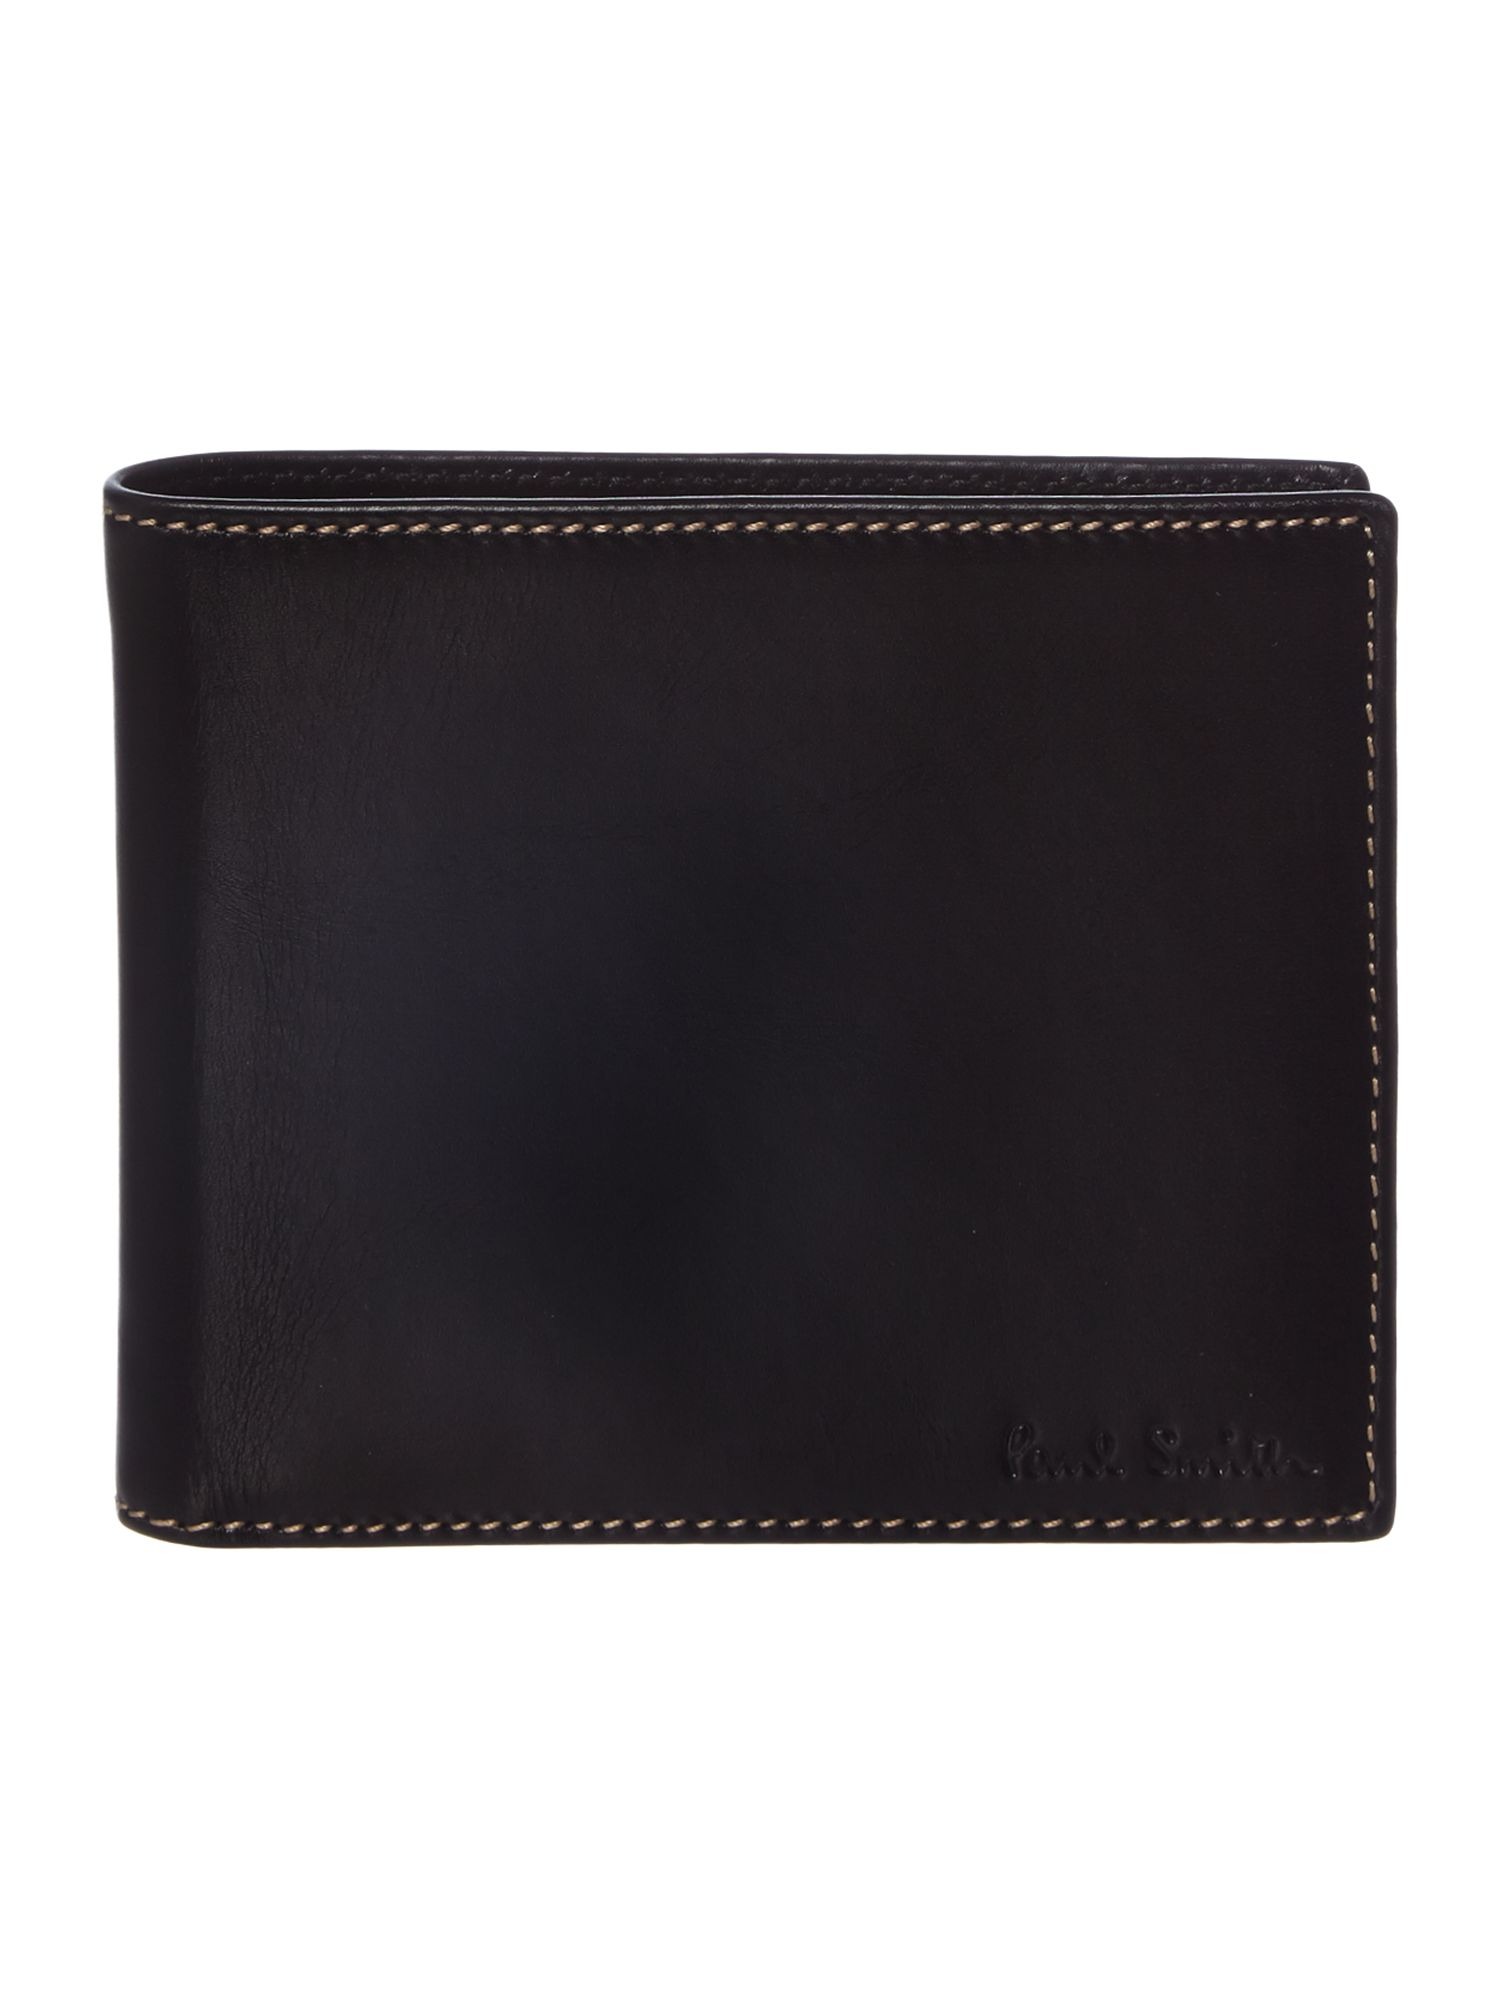 Internal top multistripe wallet